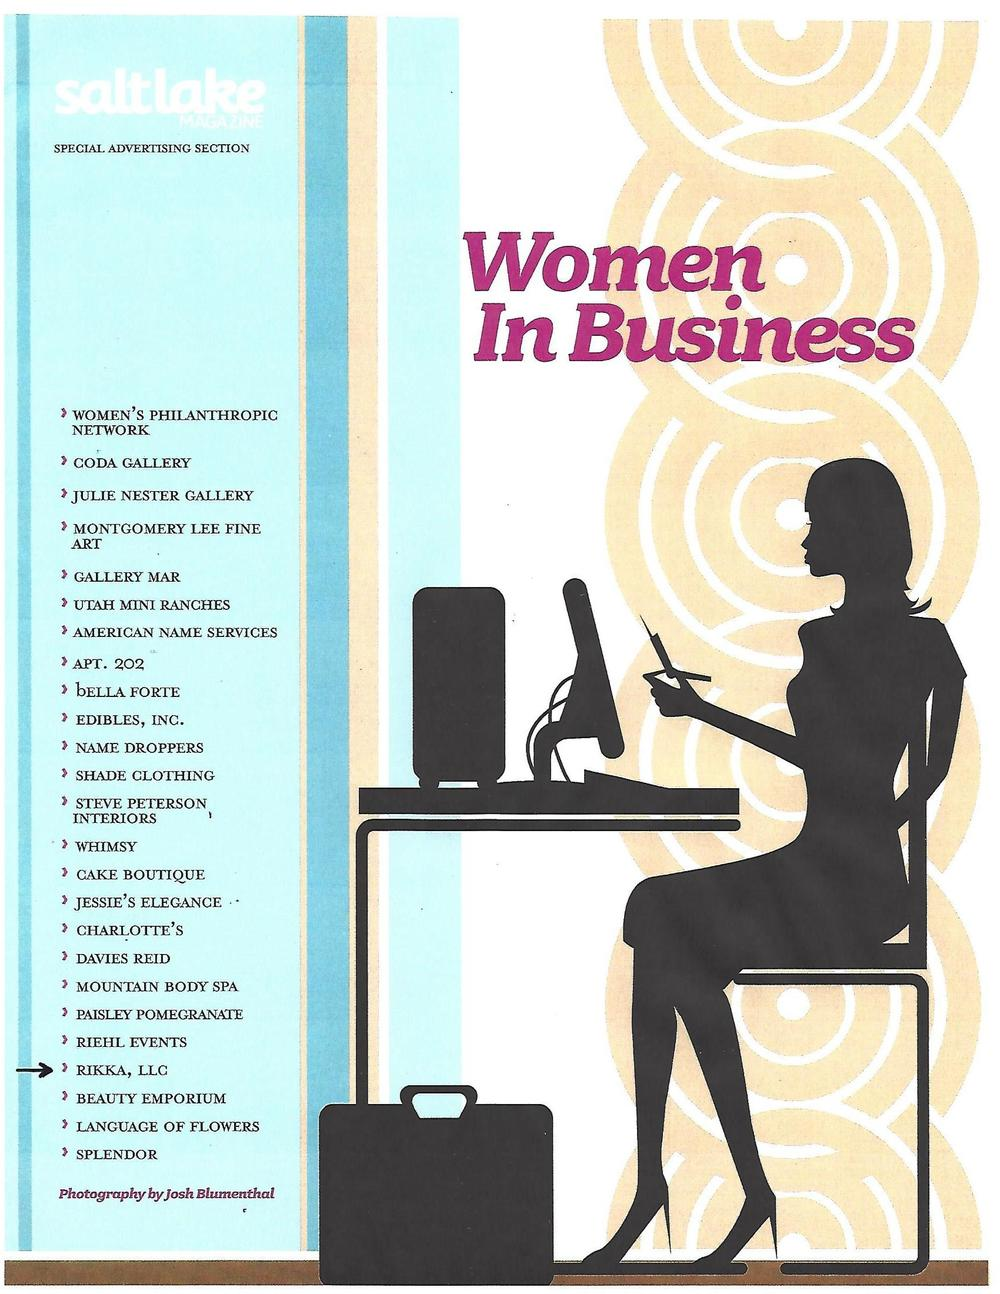 Women in Business (Salt Lake Magazine Oct. 2008) - Article on Rikka, LLC_Page_1.jpg